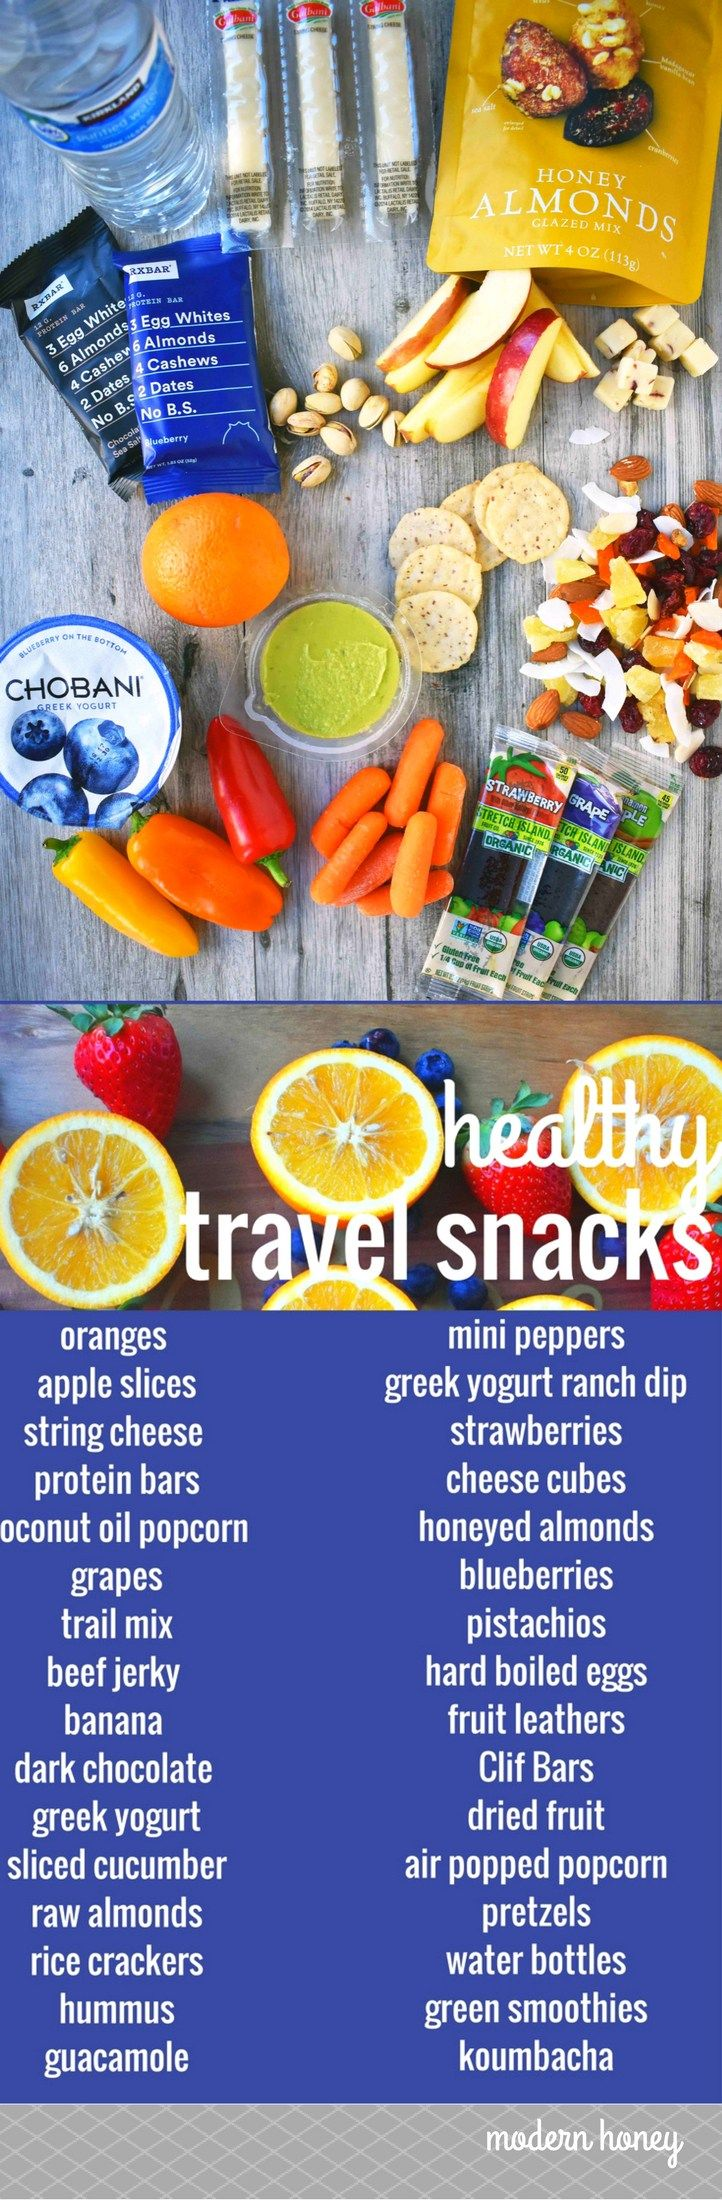 681b97d552c19aff7e782ca895d4bdfc--vegan-travel-snacks-healthy-road-trip-snacks-for-kids